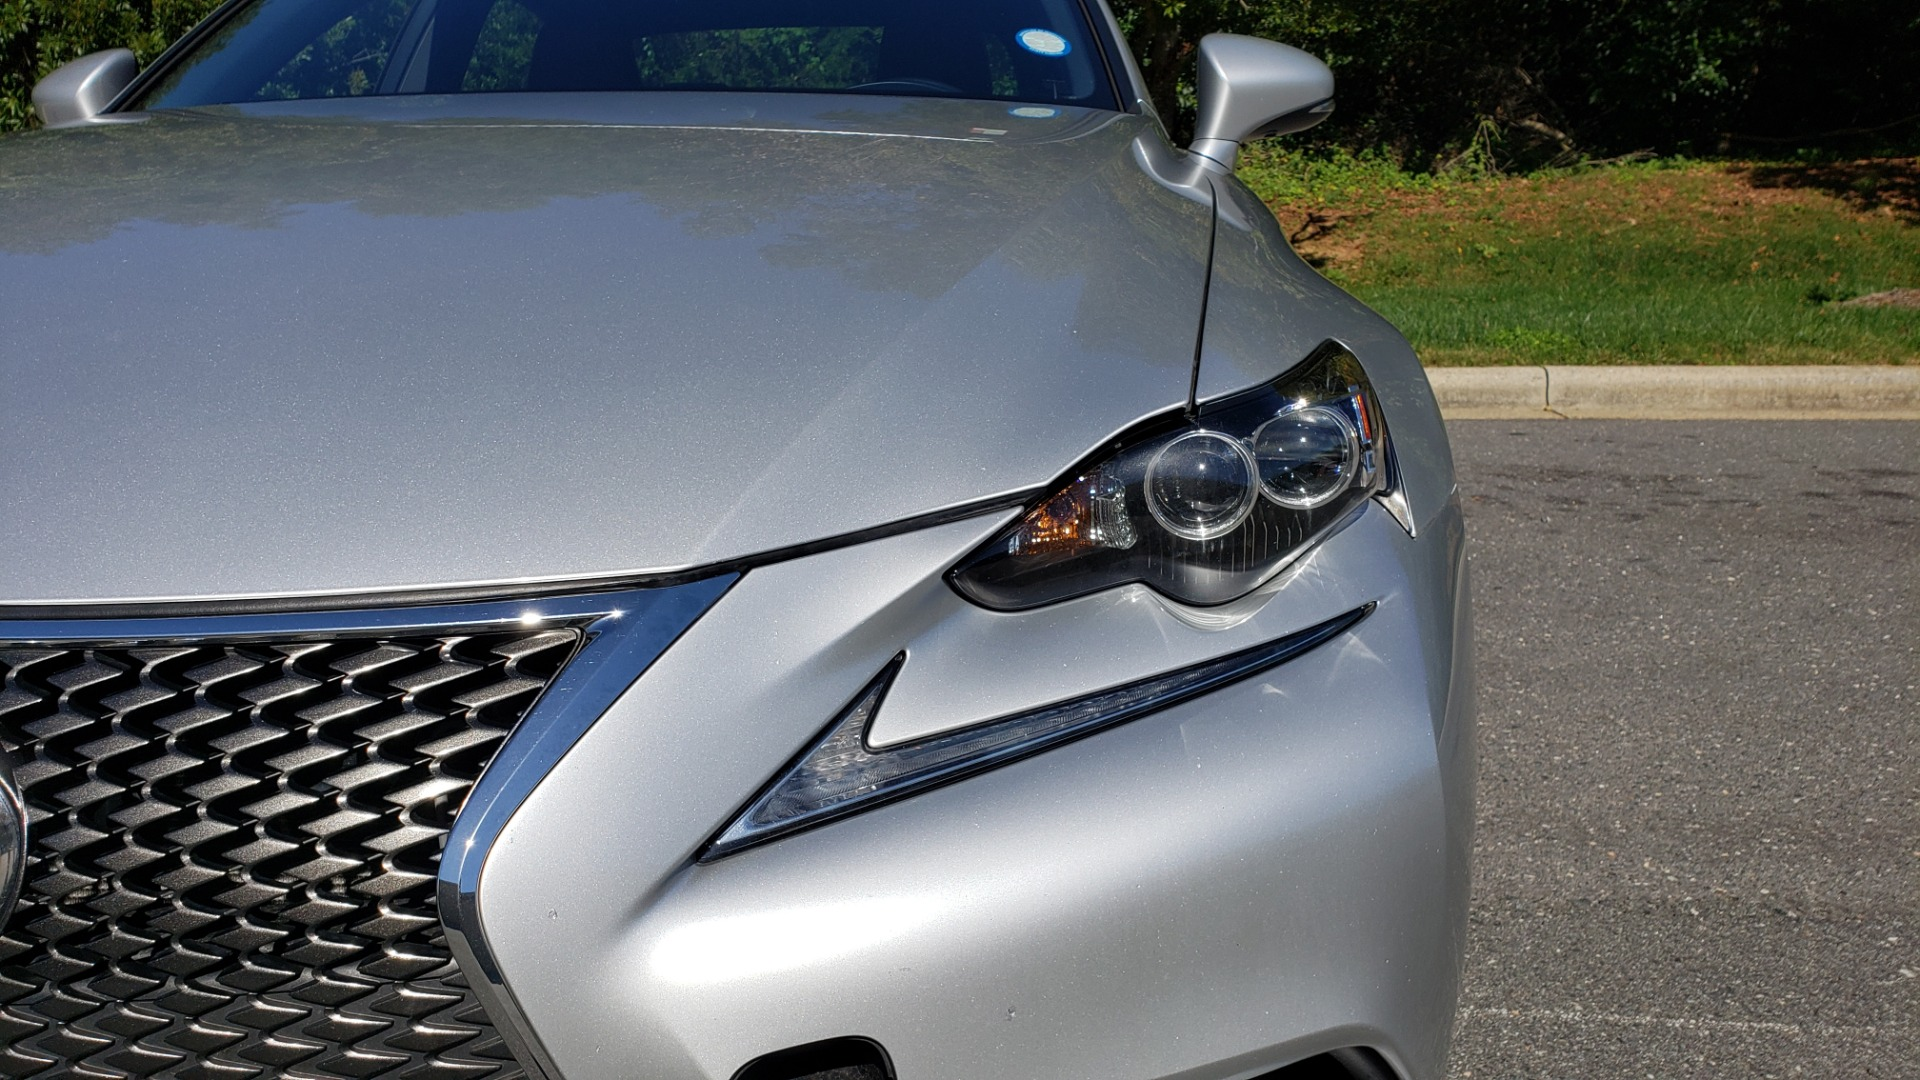 Used 2015 Lexus IS 350 F-SPORT / AWD / NAV / SUNROOF / BSM / REARVIEW for sale Sold at Formula Imports in Charlotte NC 28227 24